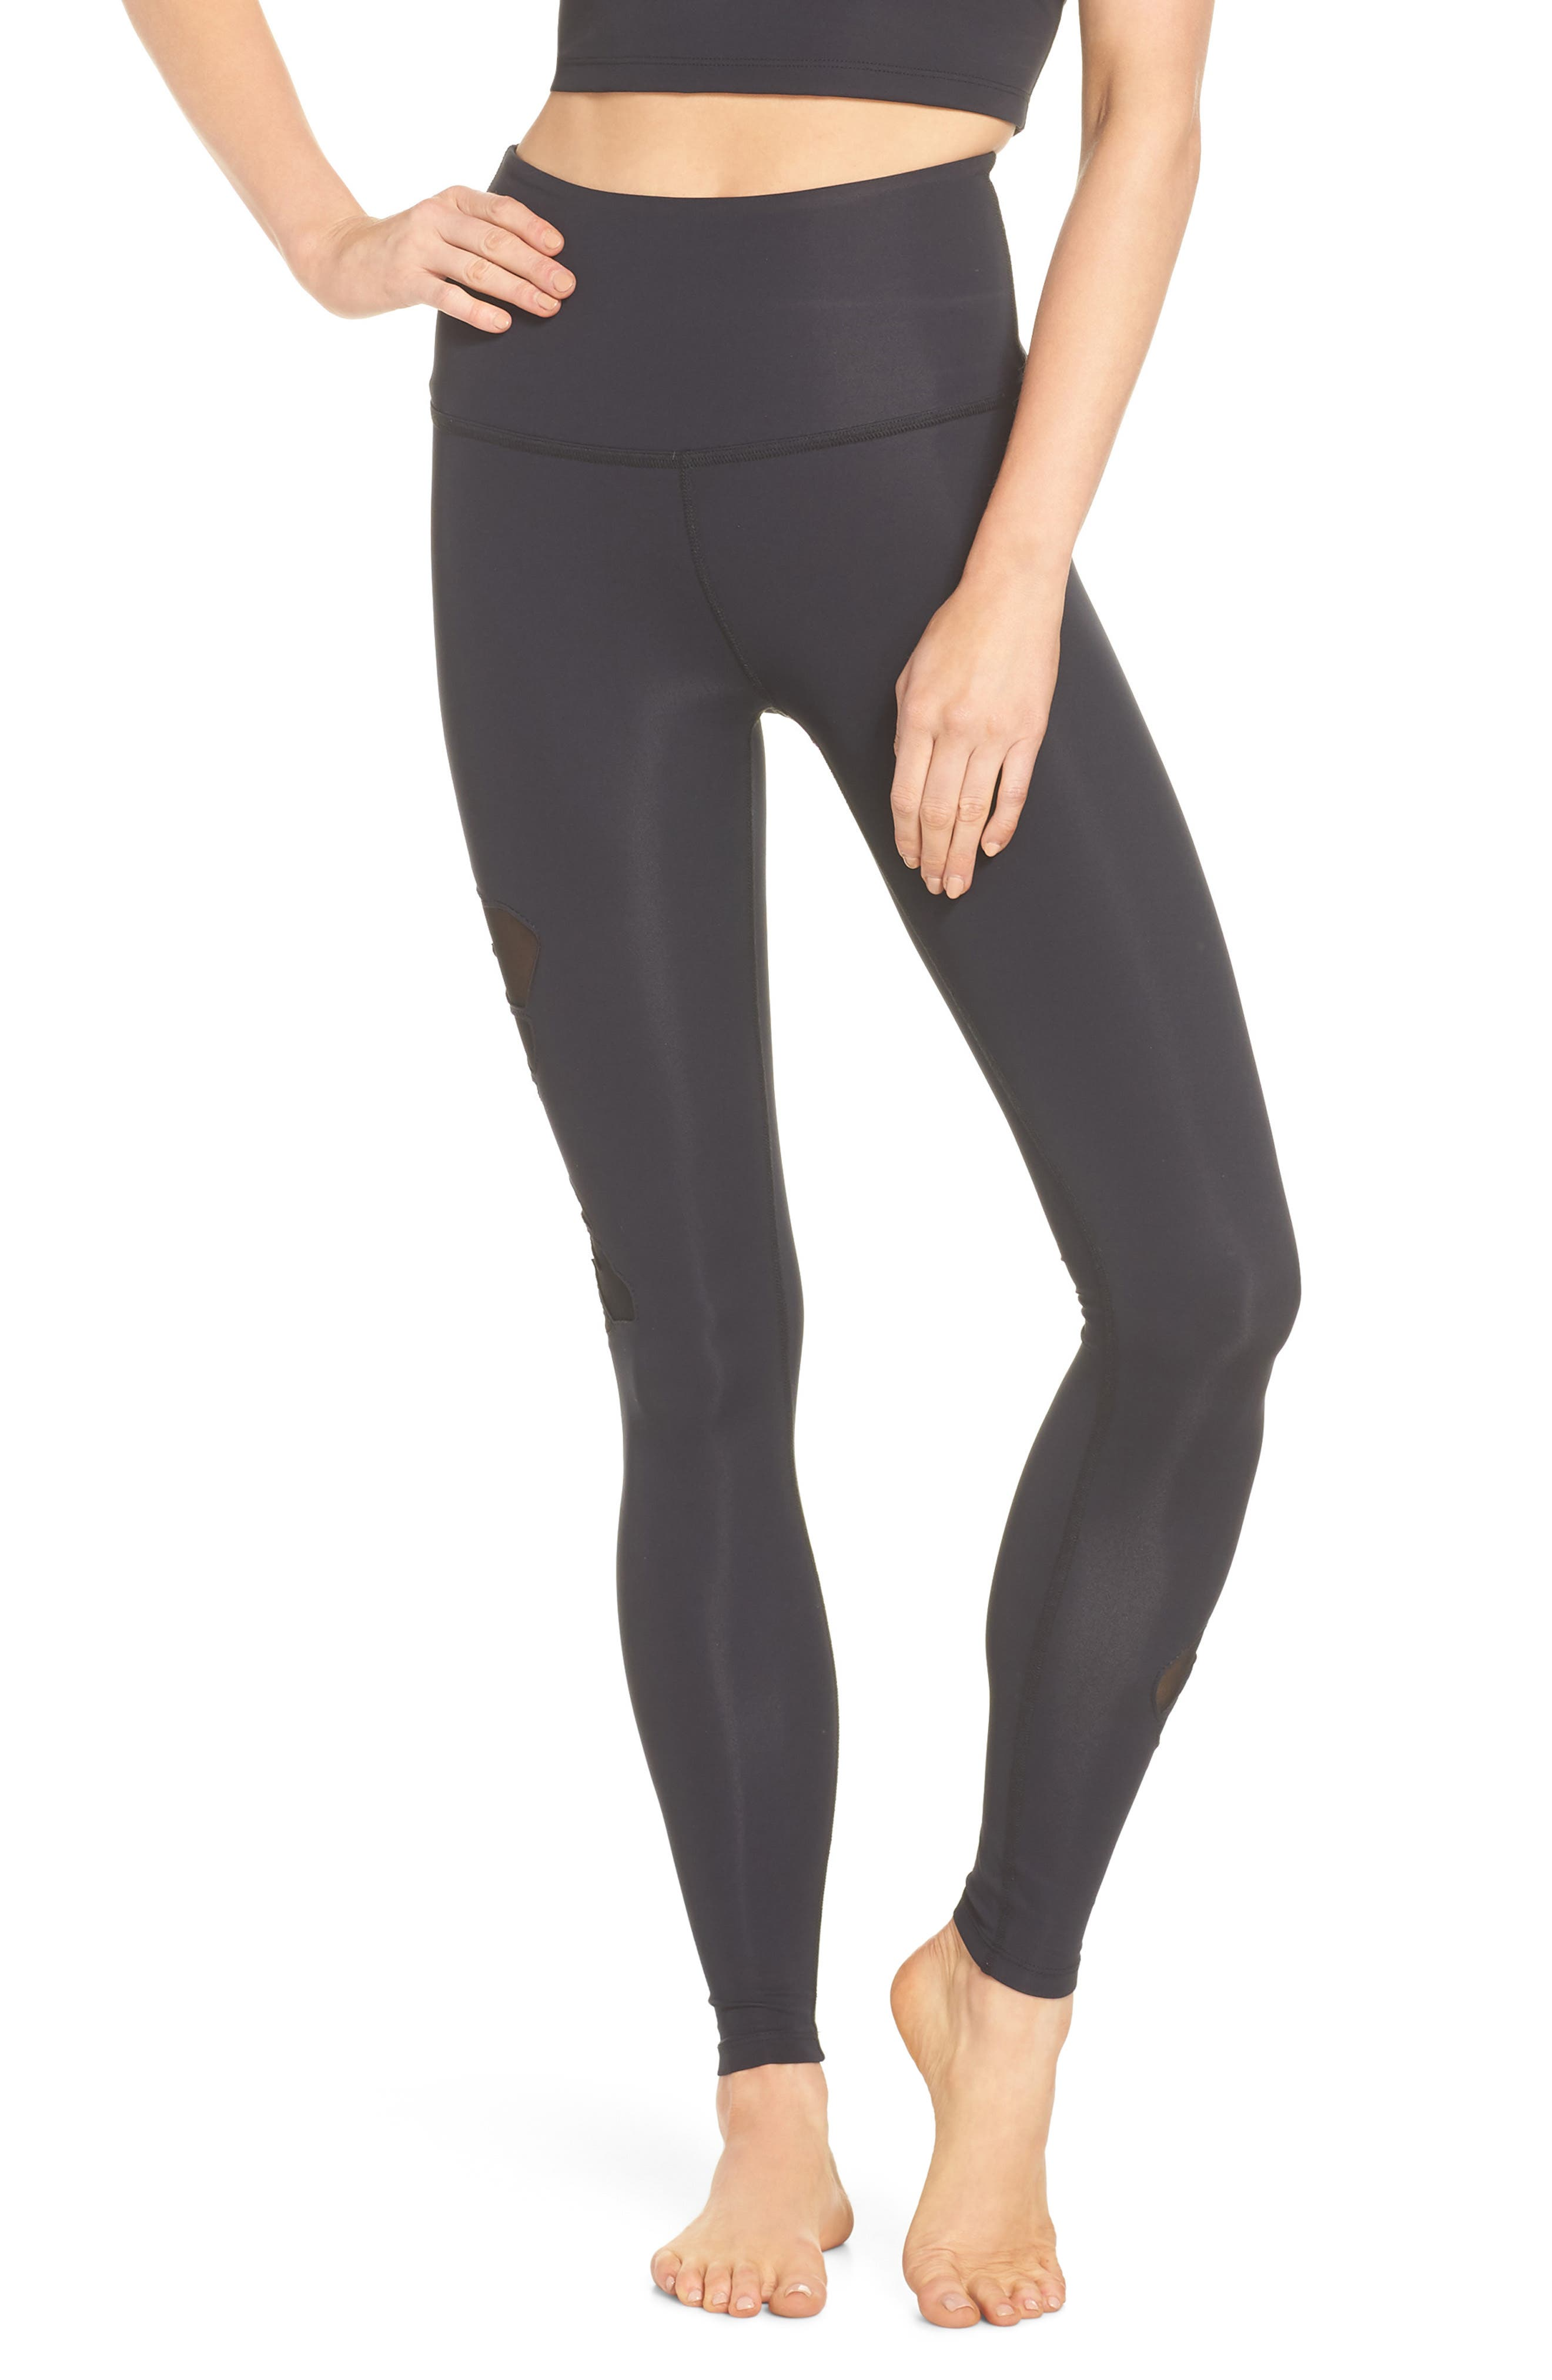 Take Leaf High Waist Leggings,                             Main thumbnail 1, color,                             002